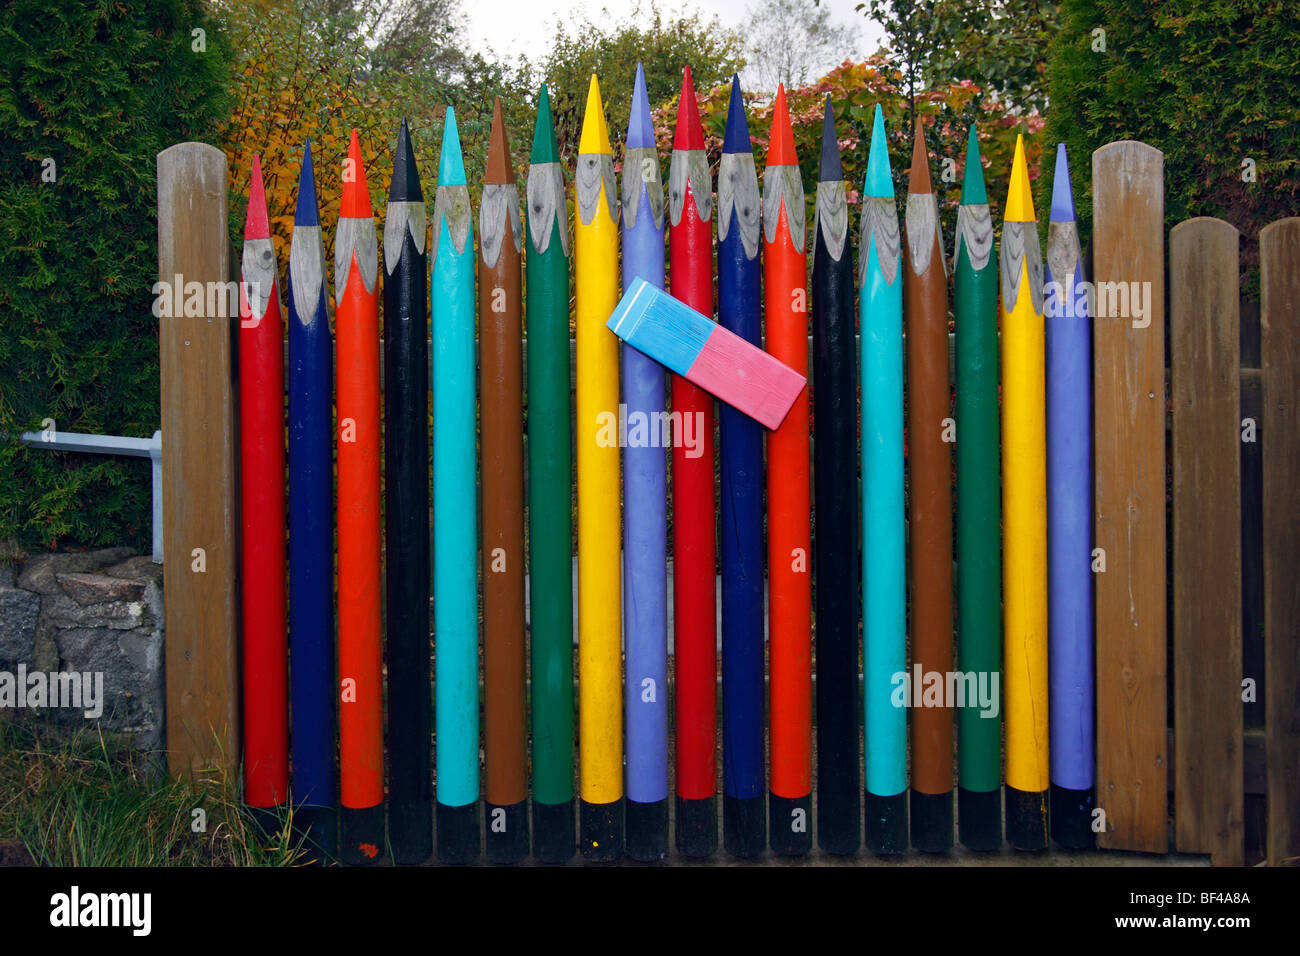 Inventive wooden fence with gate from crayons and a eraser, Gothmund, Hanseatic City of Luebeck, Germany, Europe - Stock Image